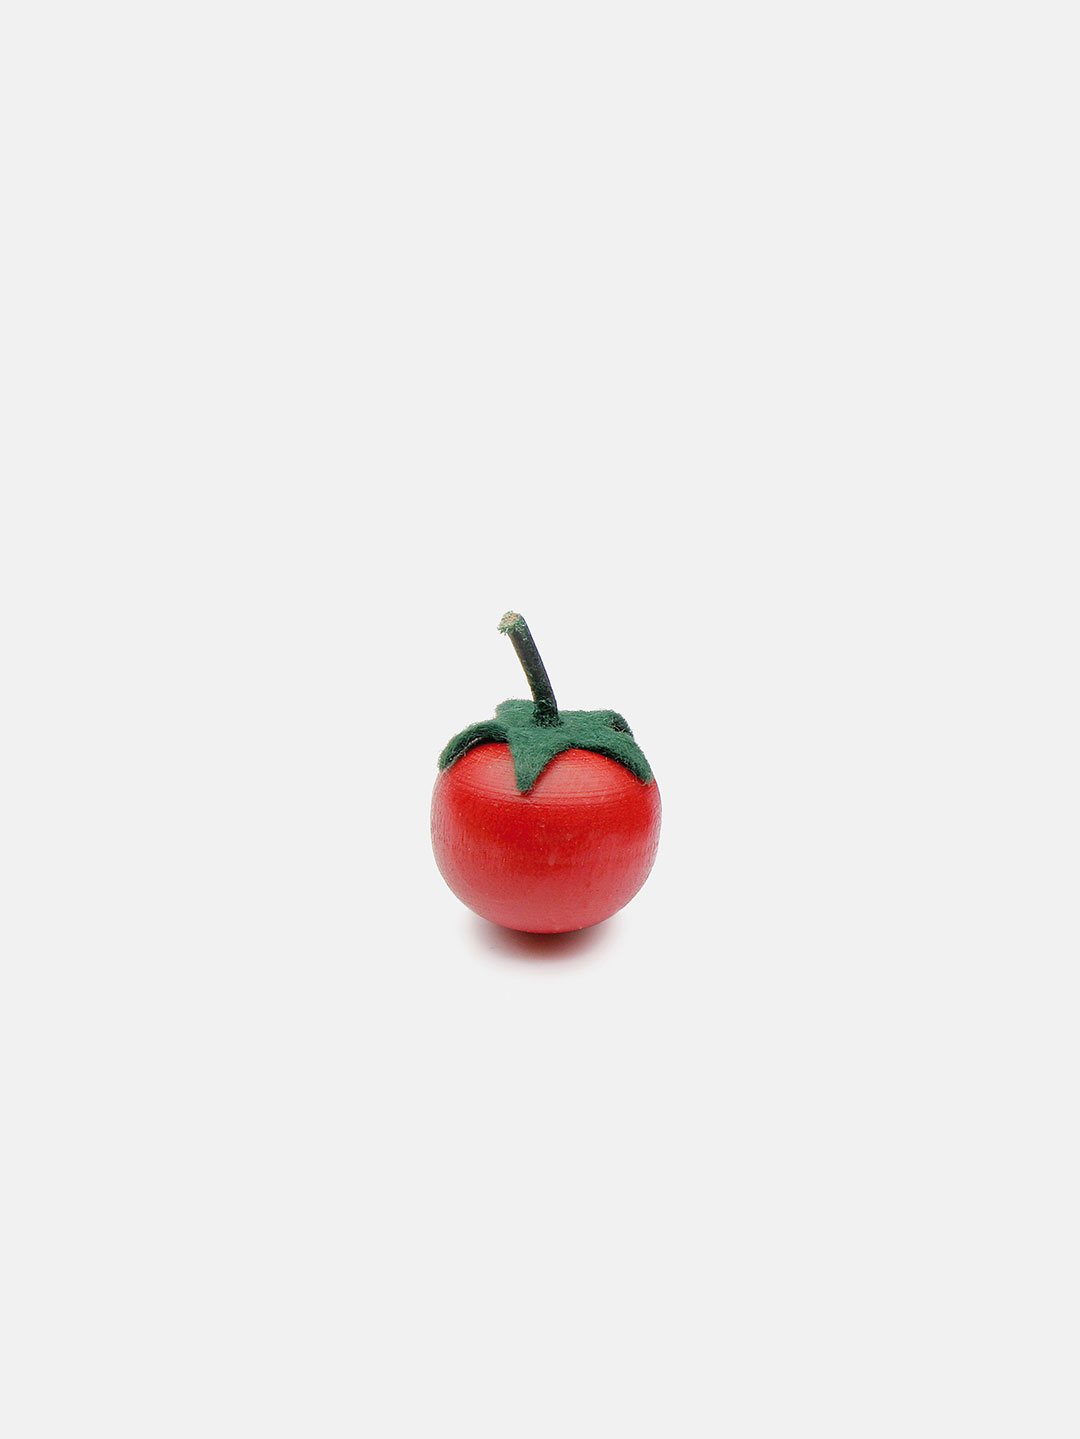 Wooden Vegetable - Cherry Tomato